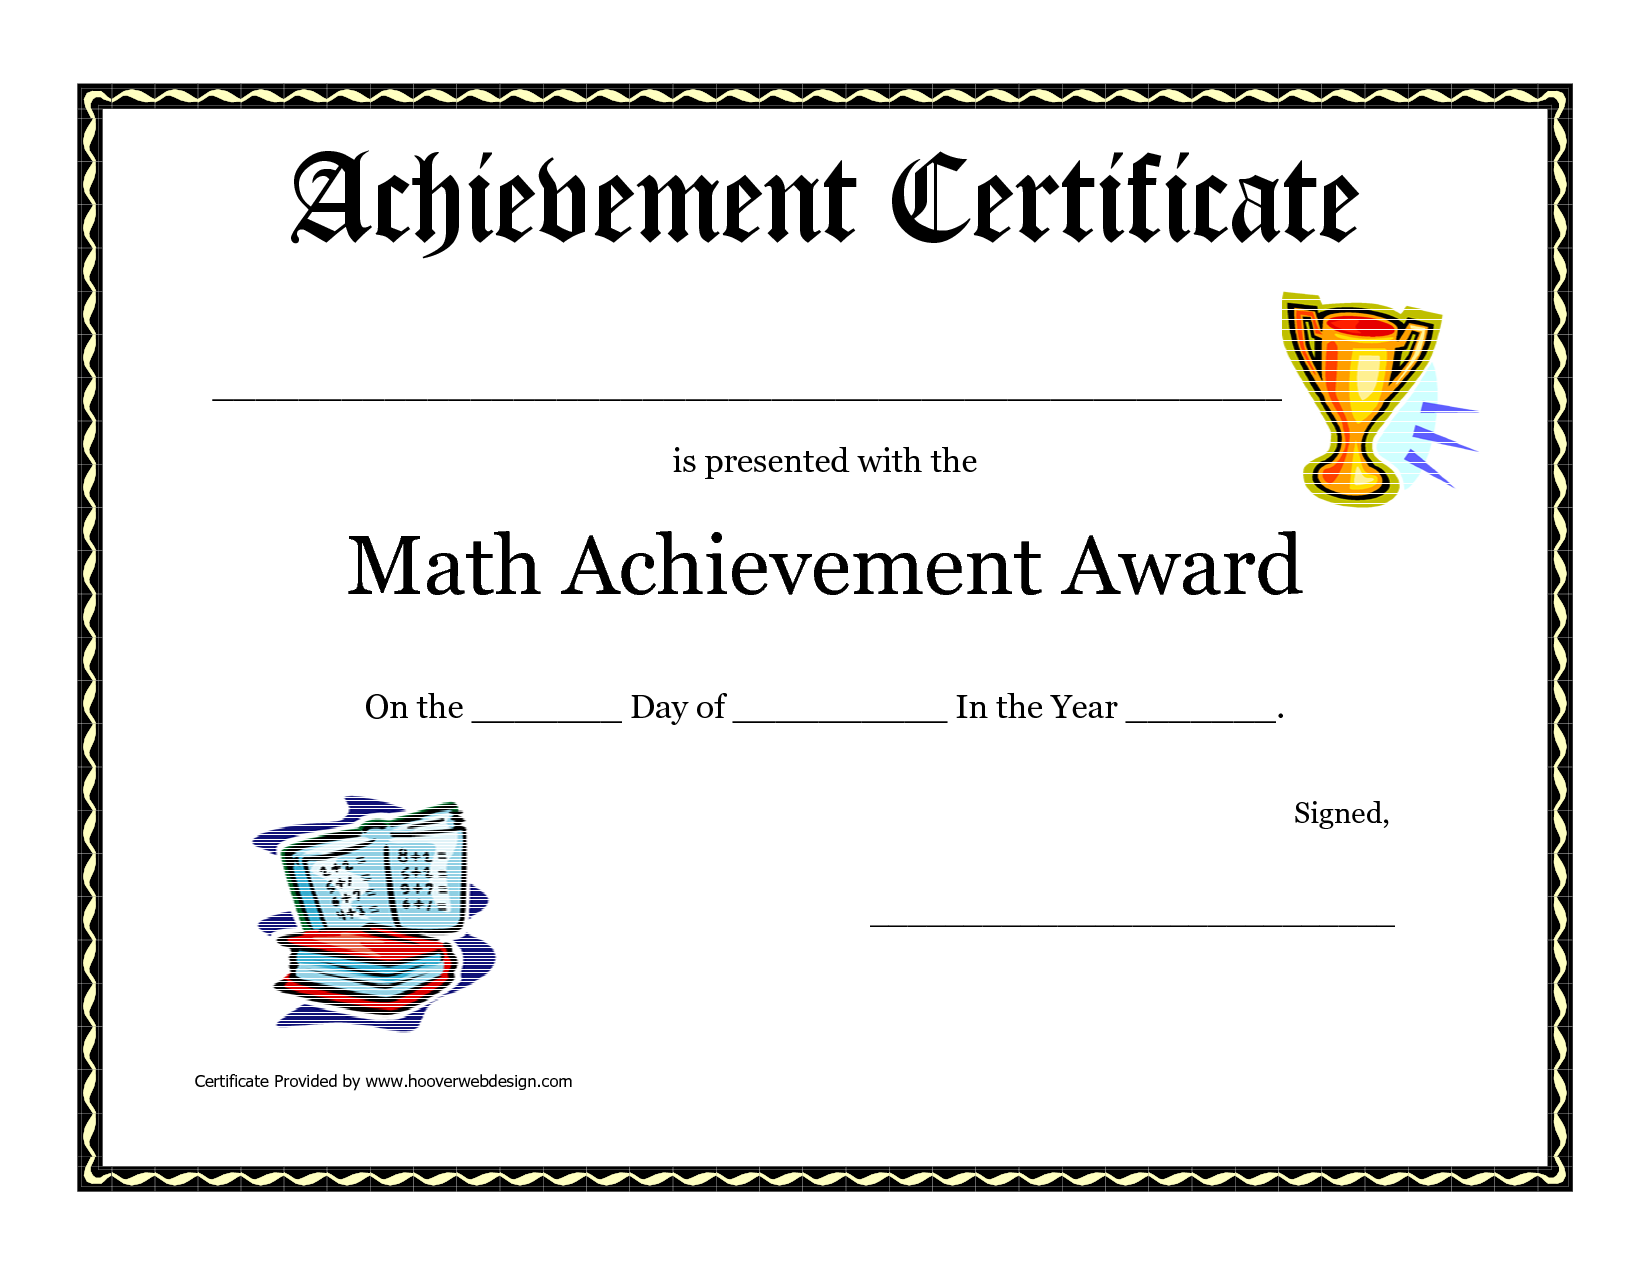 Math achievement award printable certificate pdf math activites math achievement award printable certificate pdf yadclub Images